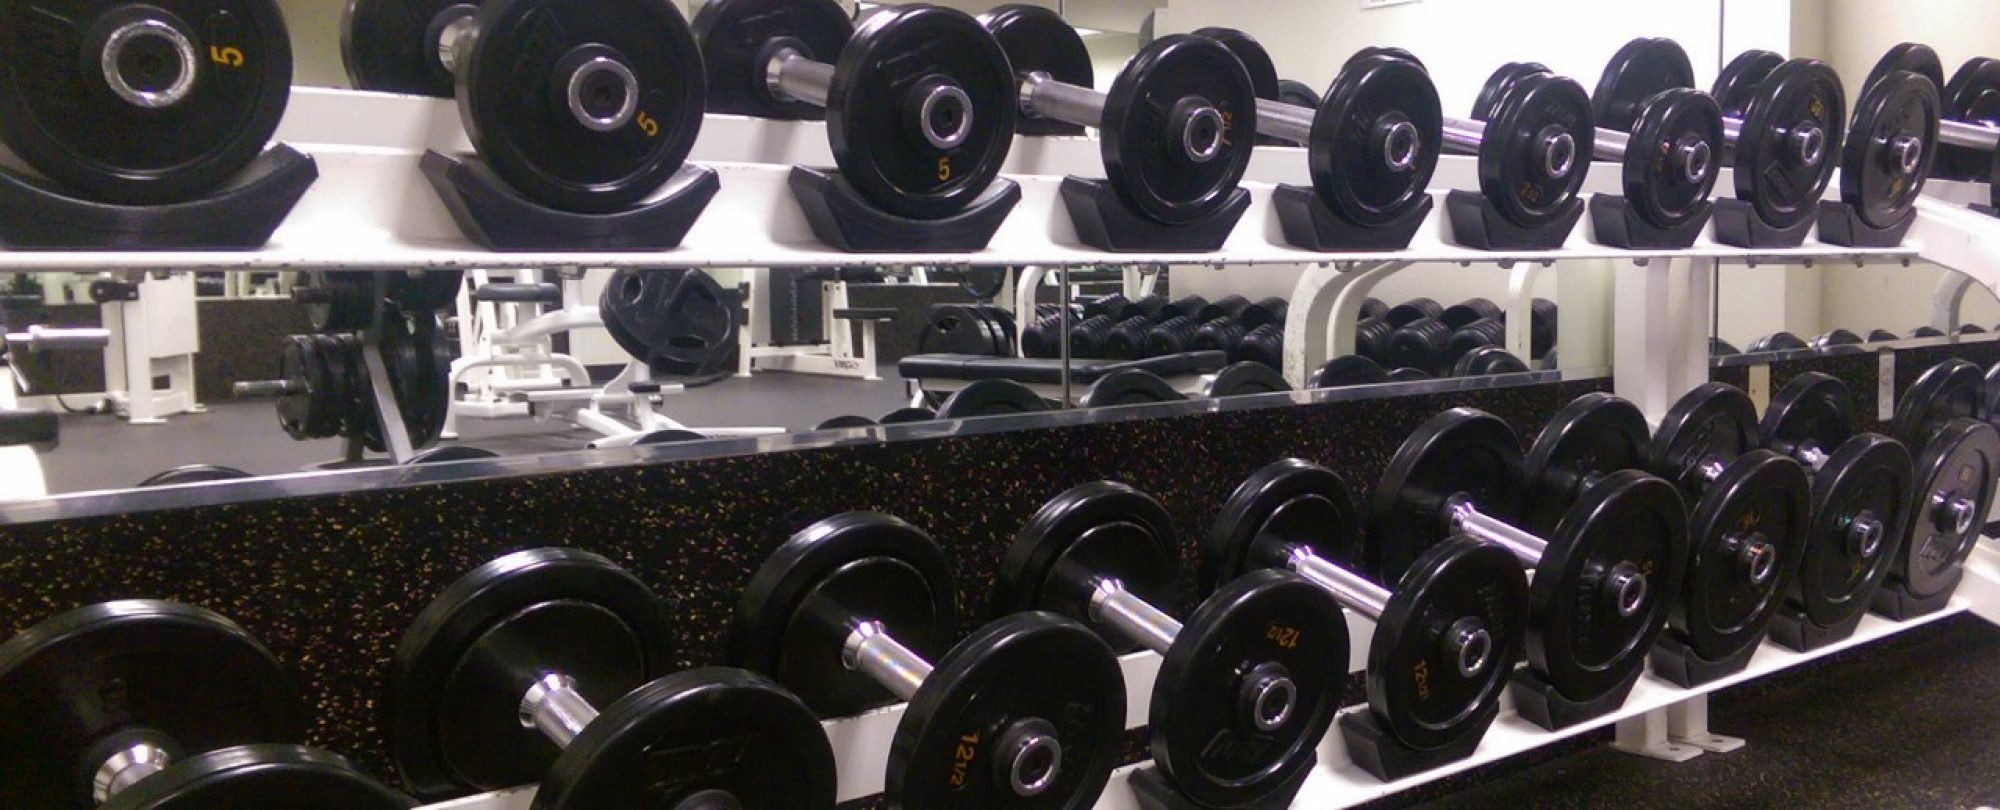 photo of free weights on racks